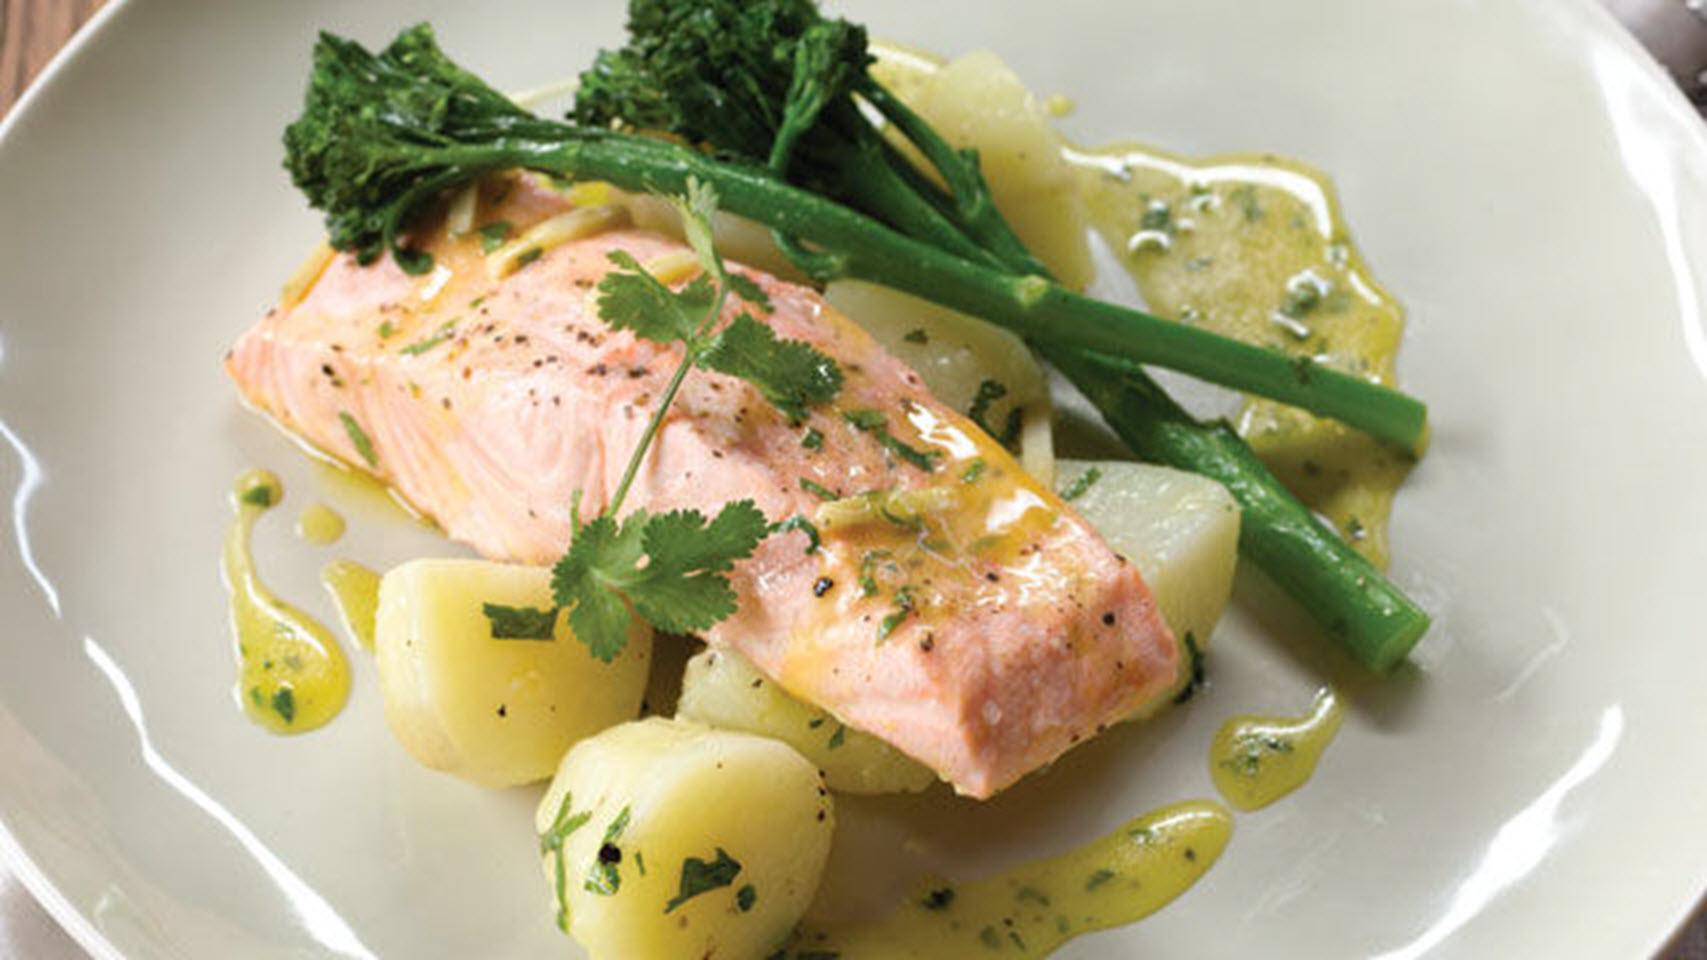 """Here is a complete meal with new potatoes, broccolini (or asparagus), and steamed salmon. """"Light but bursting with flavor,"""" says NPet. """"The perfect summer salmon recipe. Salmon and broccolini are steamed on a bed of lemon, ginger, and garlic with orange juice and served with new potatoes."""""""